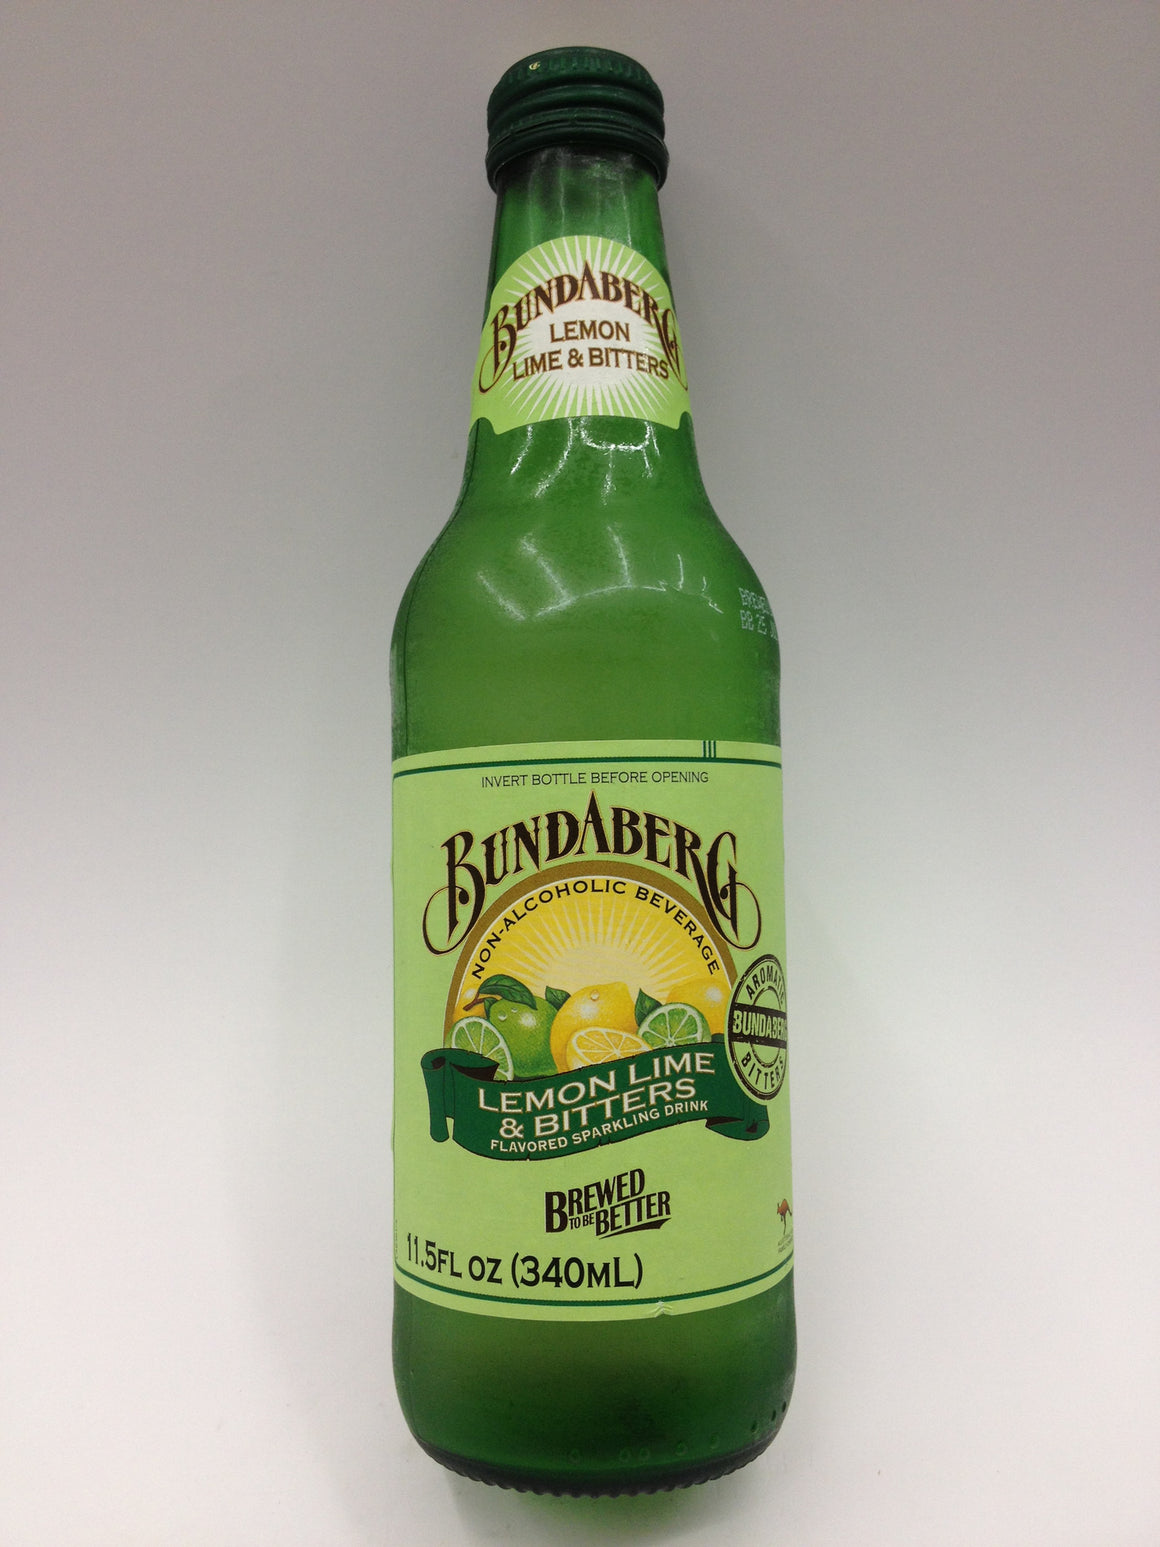 Bundaberg Lemon Lime & Bitters